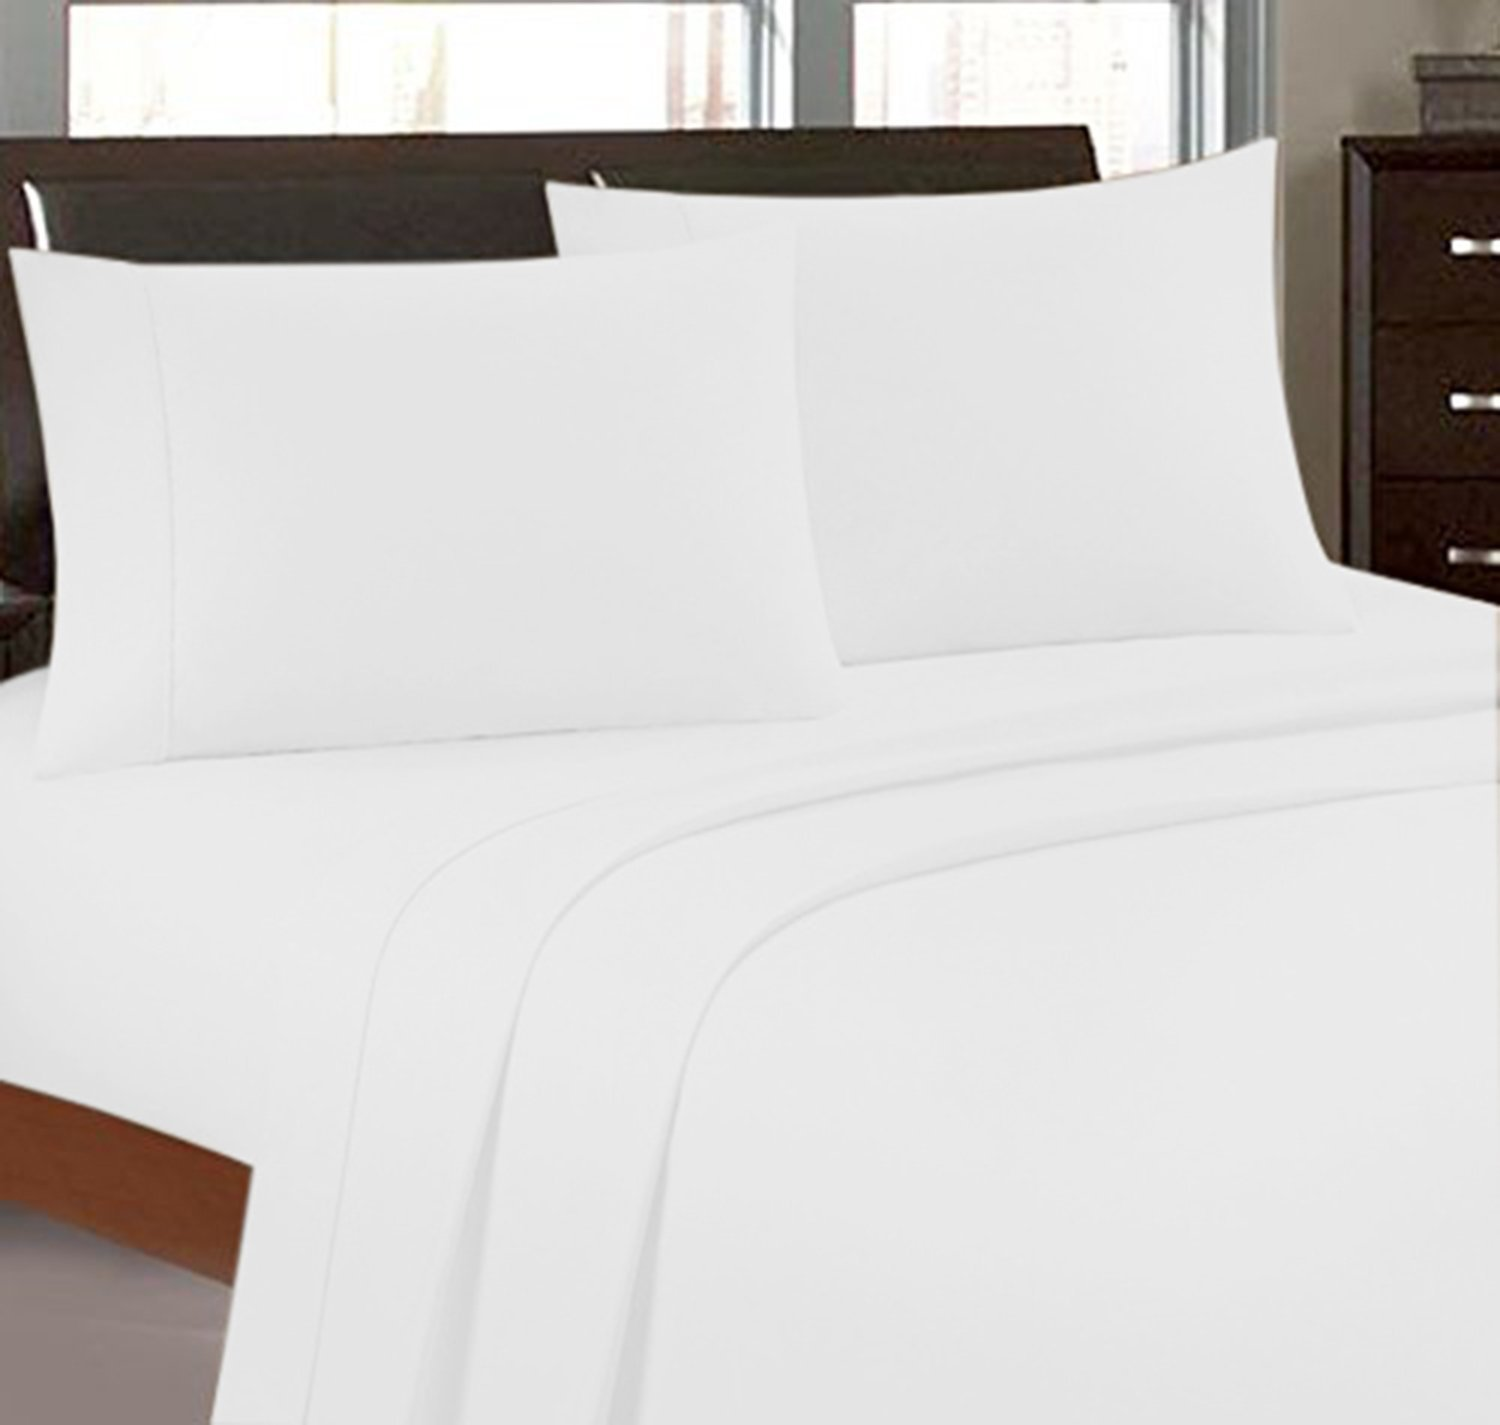 Bonne Nuit 300 Thread Count Hotel Collection Luxury Bedding Bed Sheets - Bestseller- Super Sale 100% Egyptian Cotton - Wrinkle Resistant Sheet Set-King Size Solid White Color